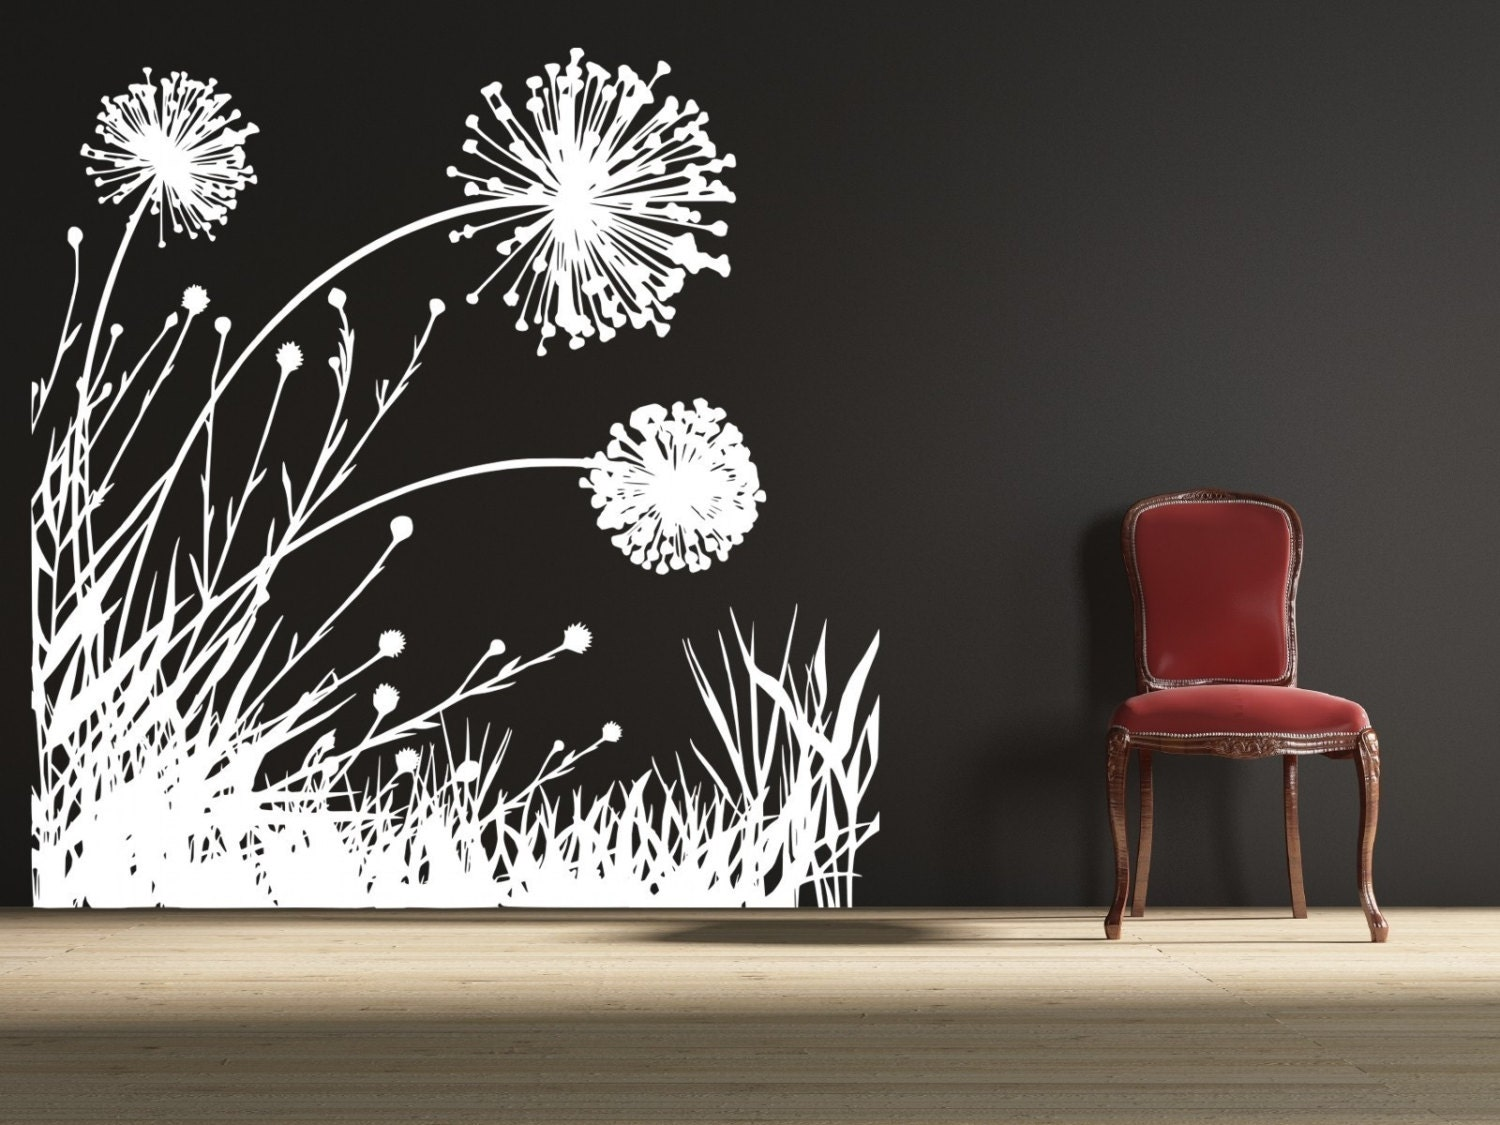 Dandelion field 2 uber decals wall decal vinyl decor art for Design wall mural